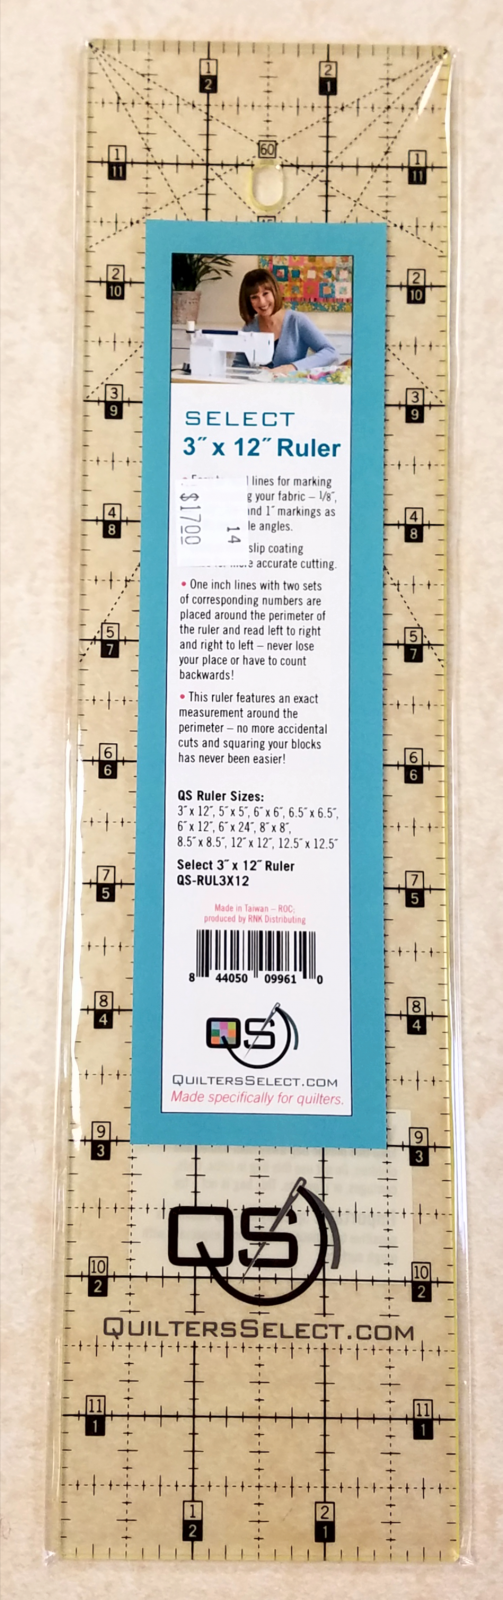 Quilter's Select Ruler 3 x 12